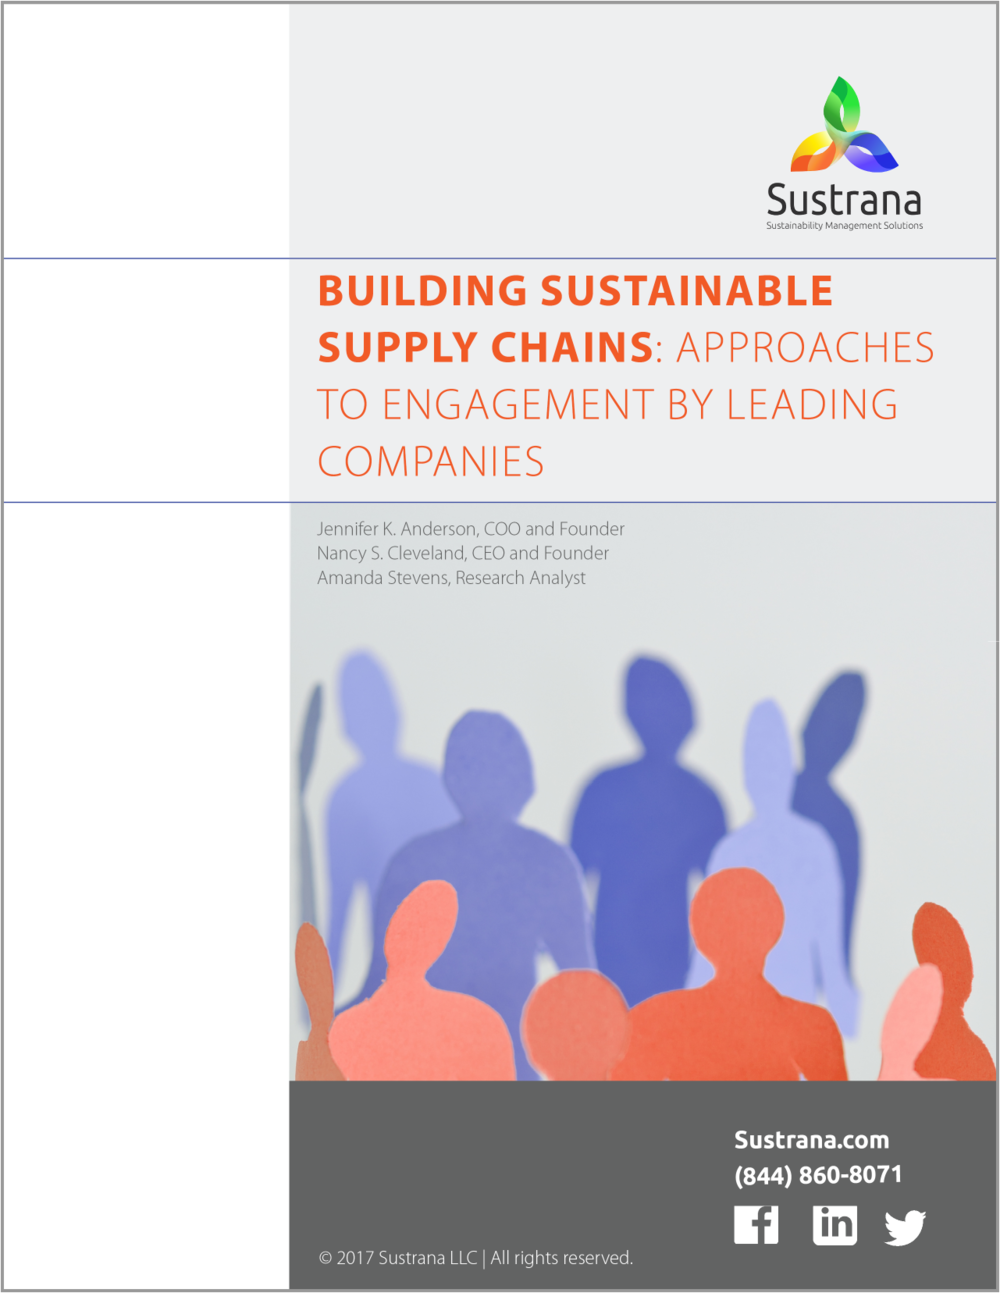 Sustrana Building Sustainable Supply Chains Research Paper Cover_Border.png